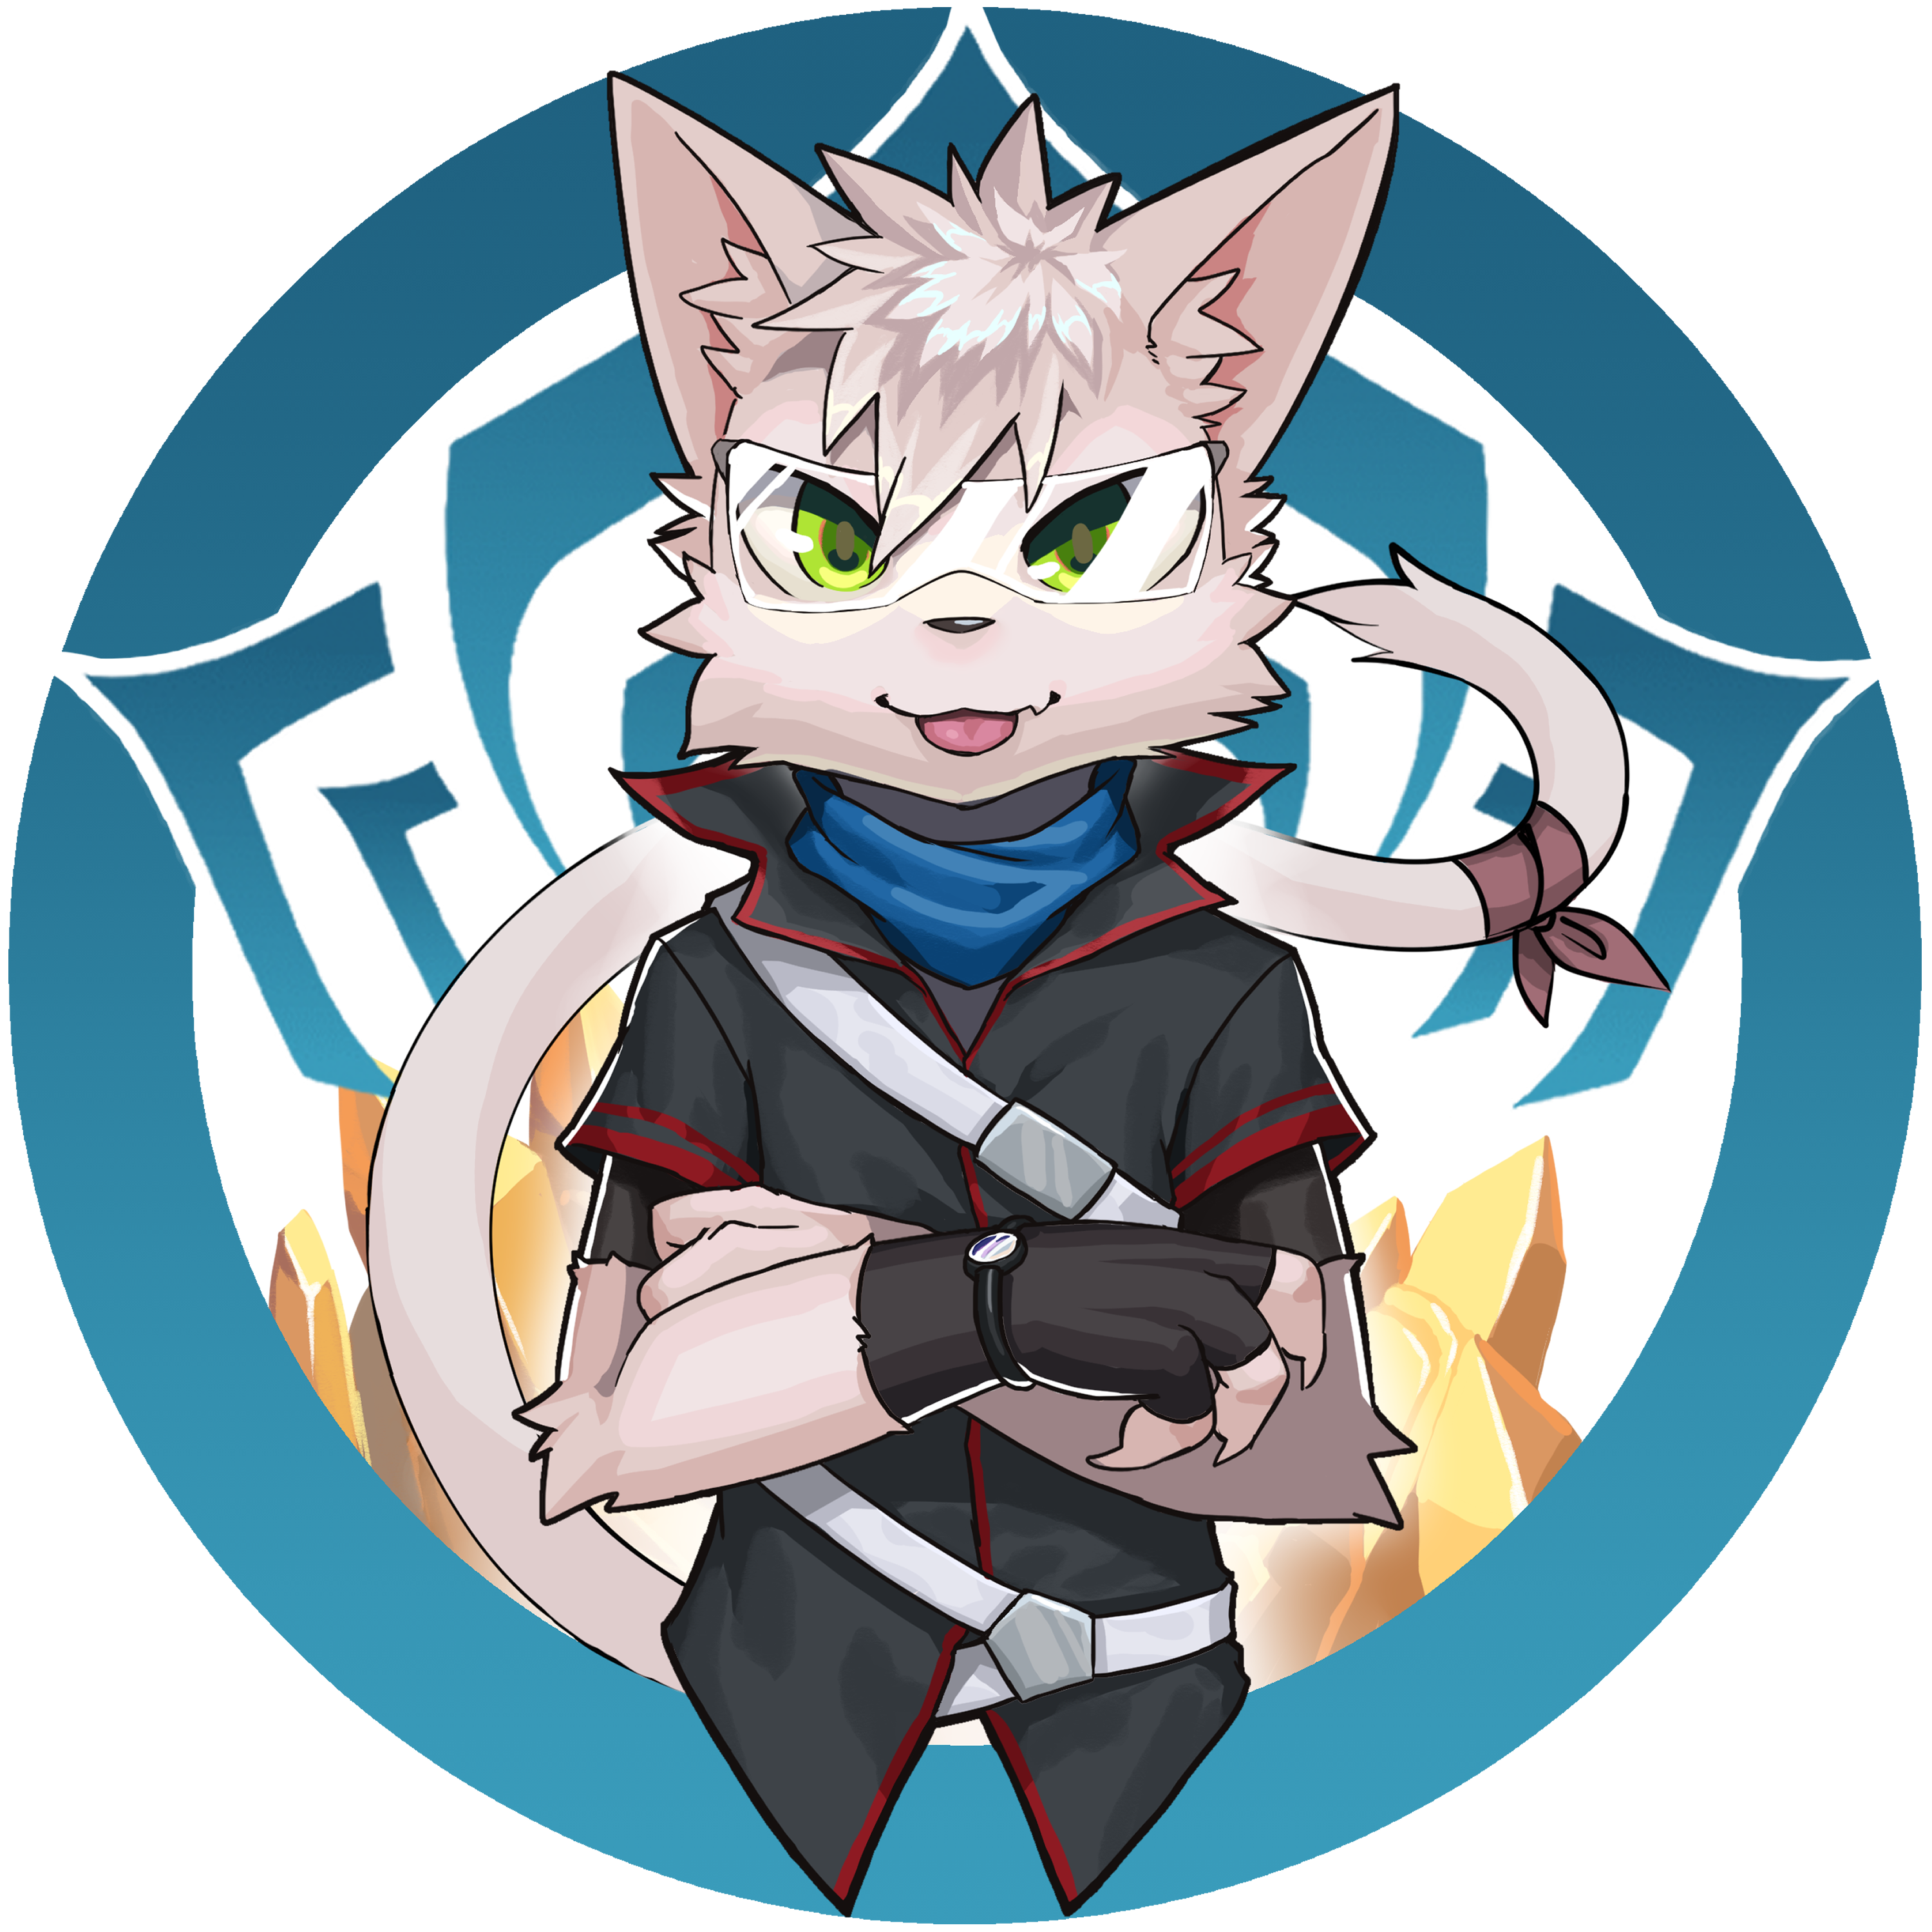 AnJetCat_New_Glyph_3000x3000.png